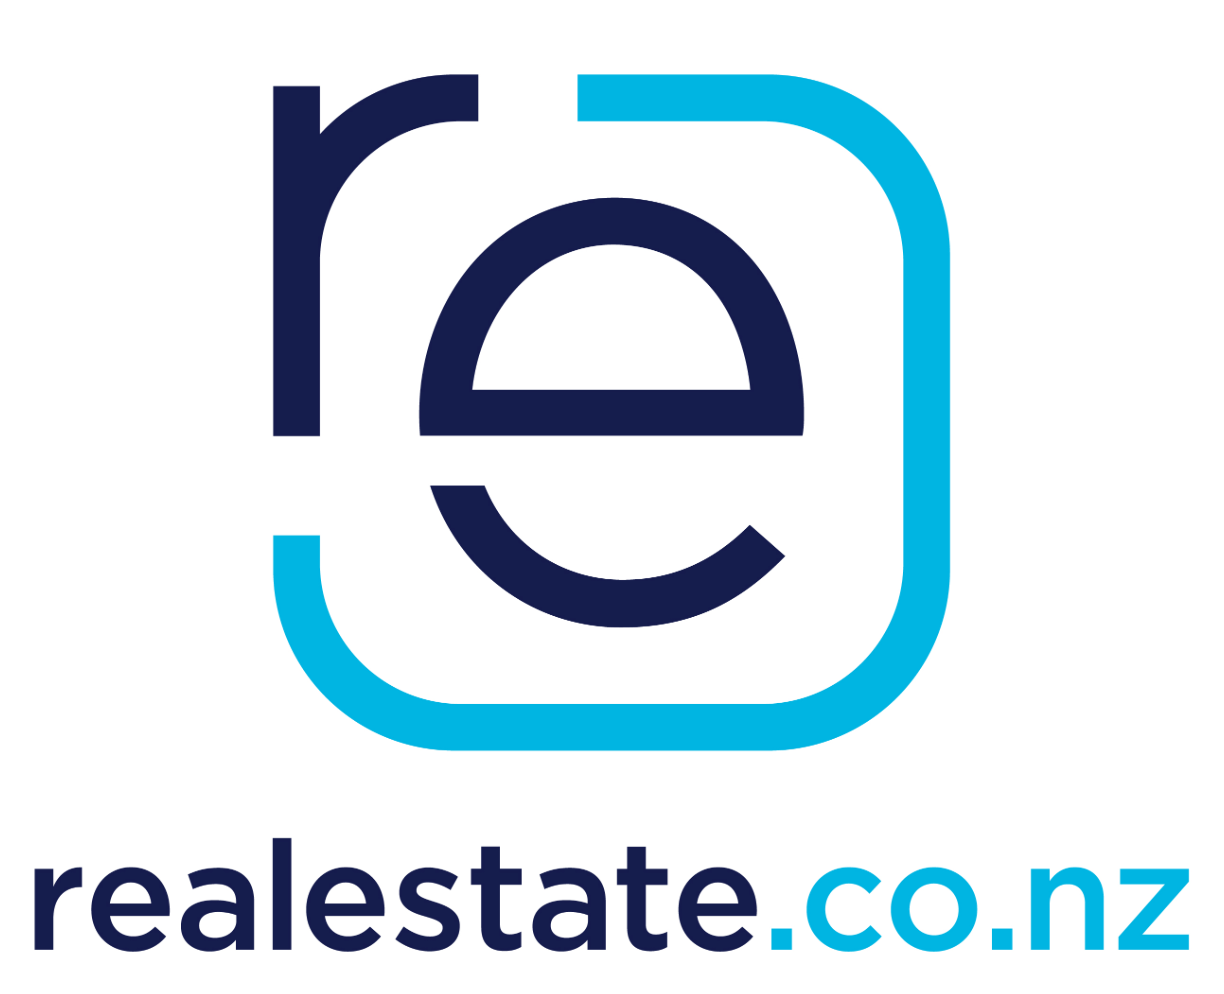 Logos___realestate_co_nz.png